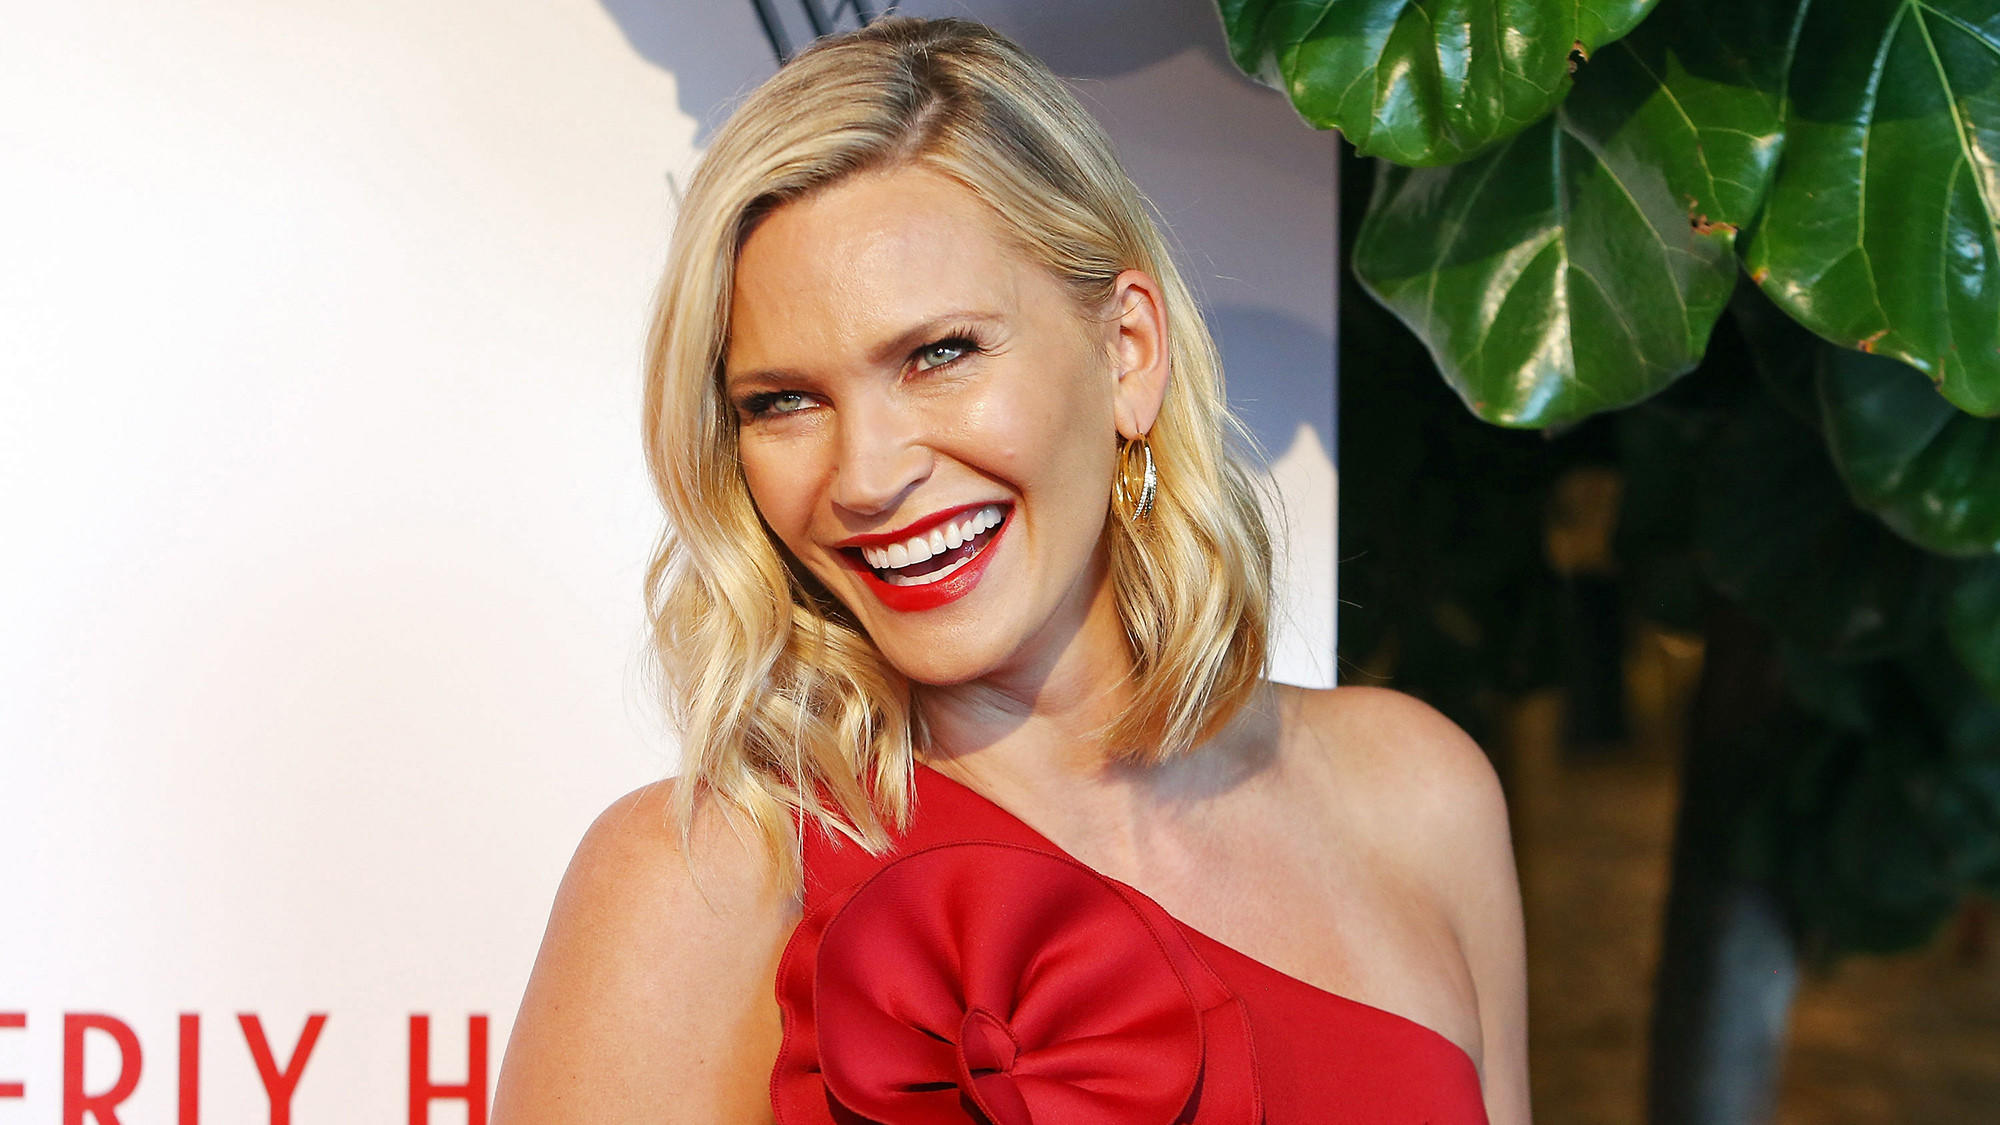 Natasha Henstridge Wiki: Net Worth, Instagram & Facts To Know